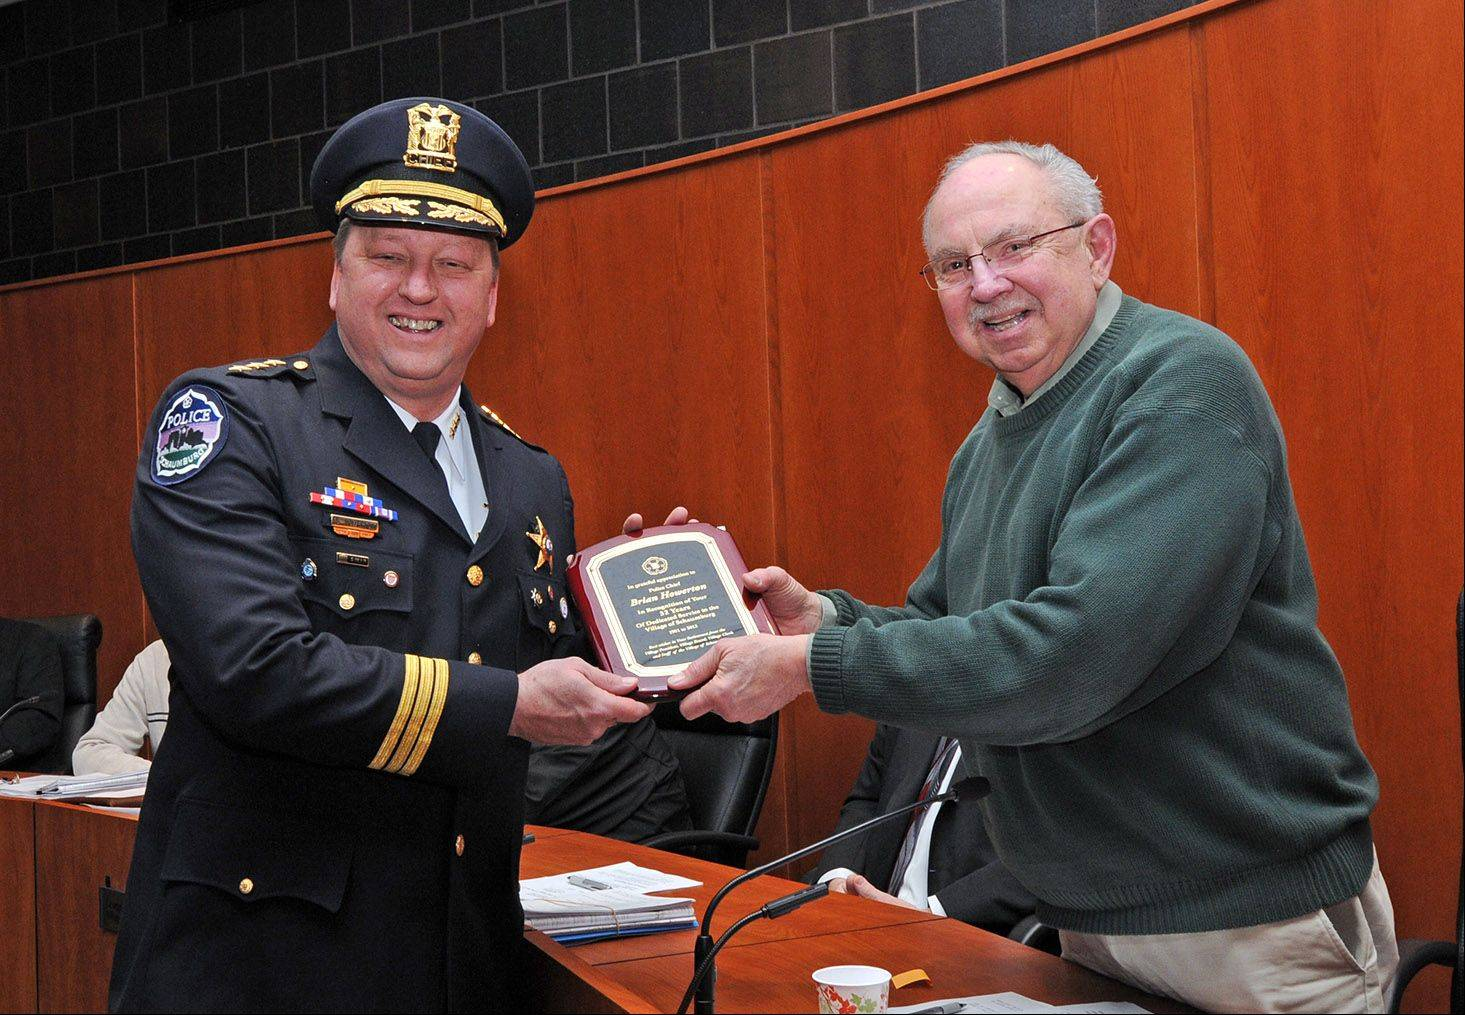 Outgoing Schaumburg Police Chief Brian Howerton, left, was recognized by Mayor Al Larson and other village officials Tuesday for his 32 years of service to the village.